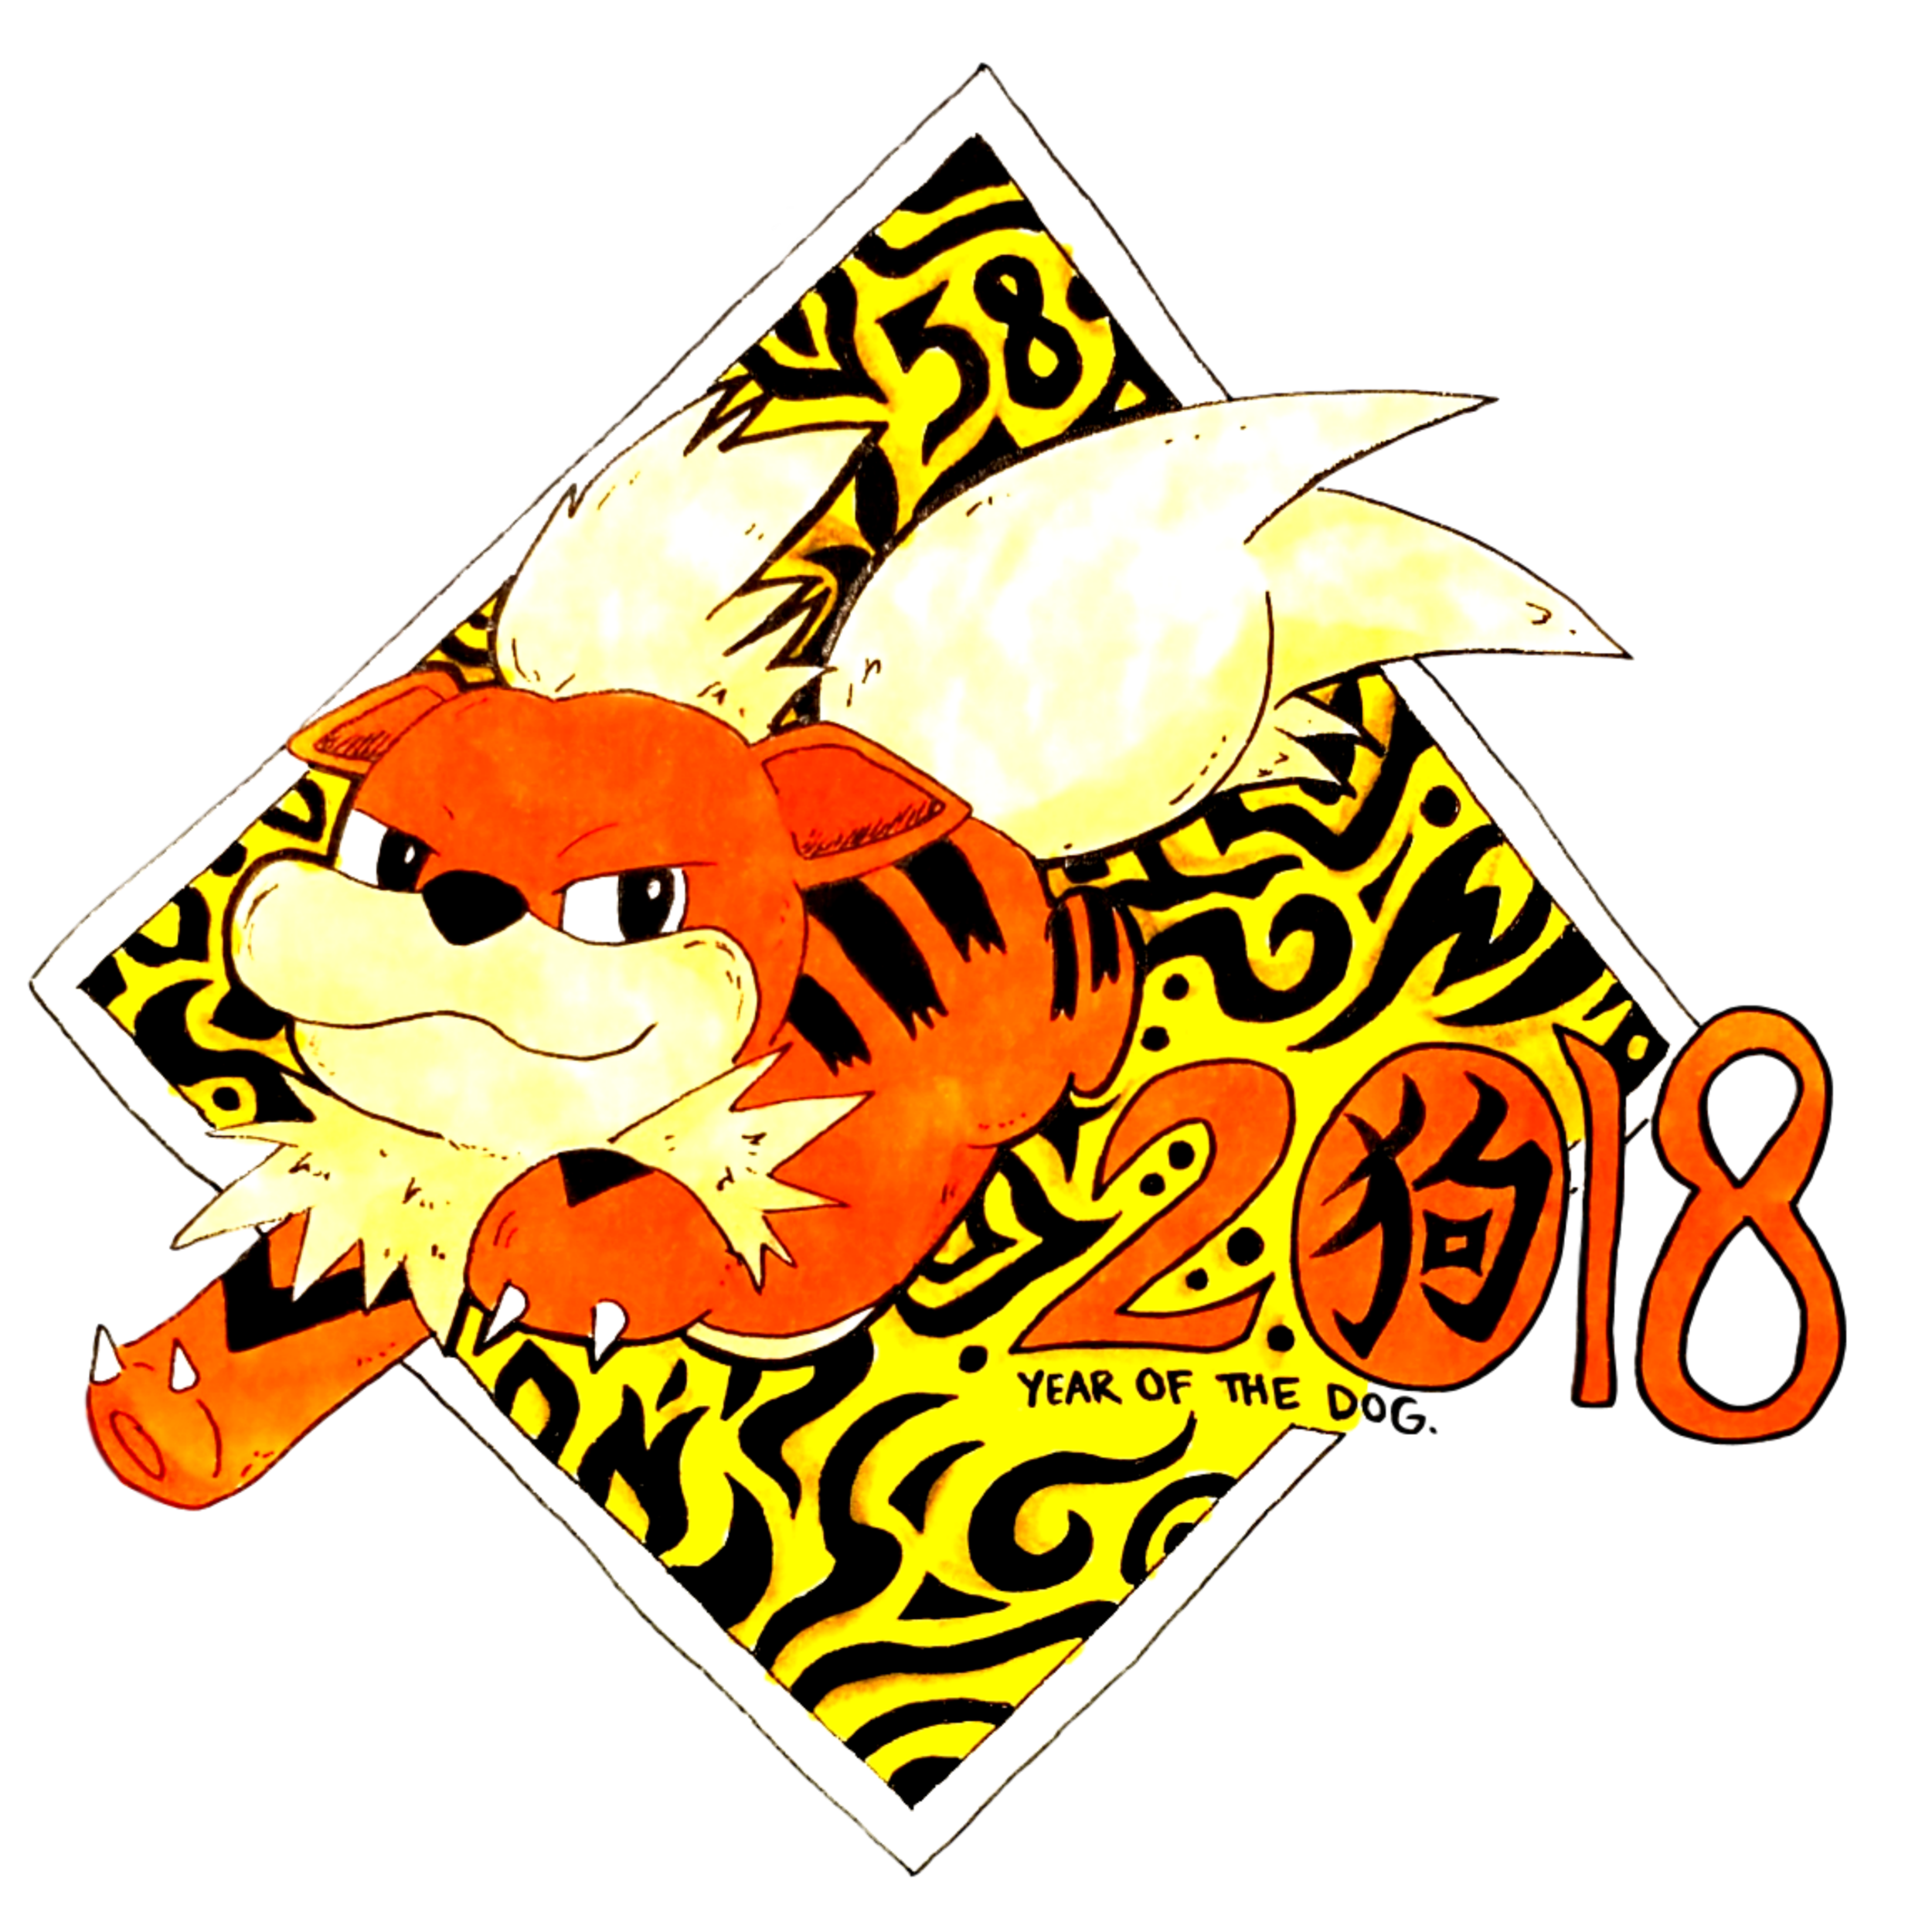 YEAR OF THE GROWLITHE